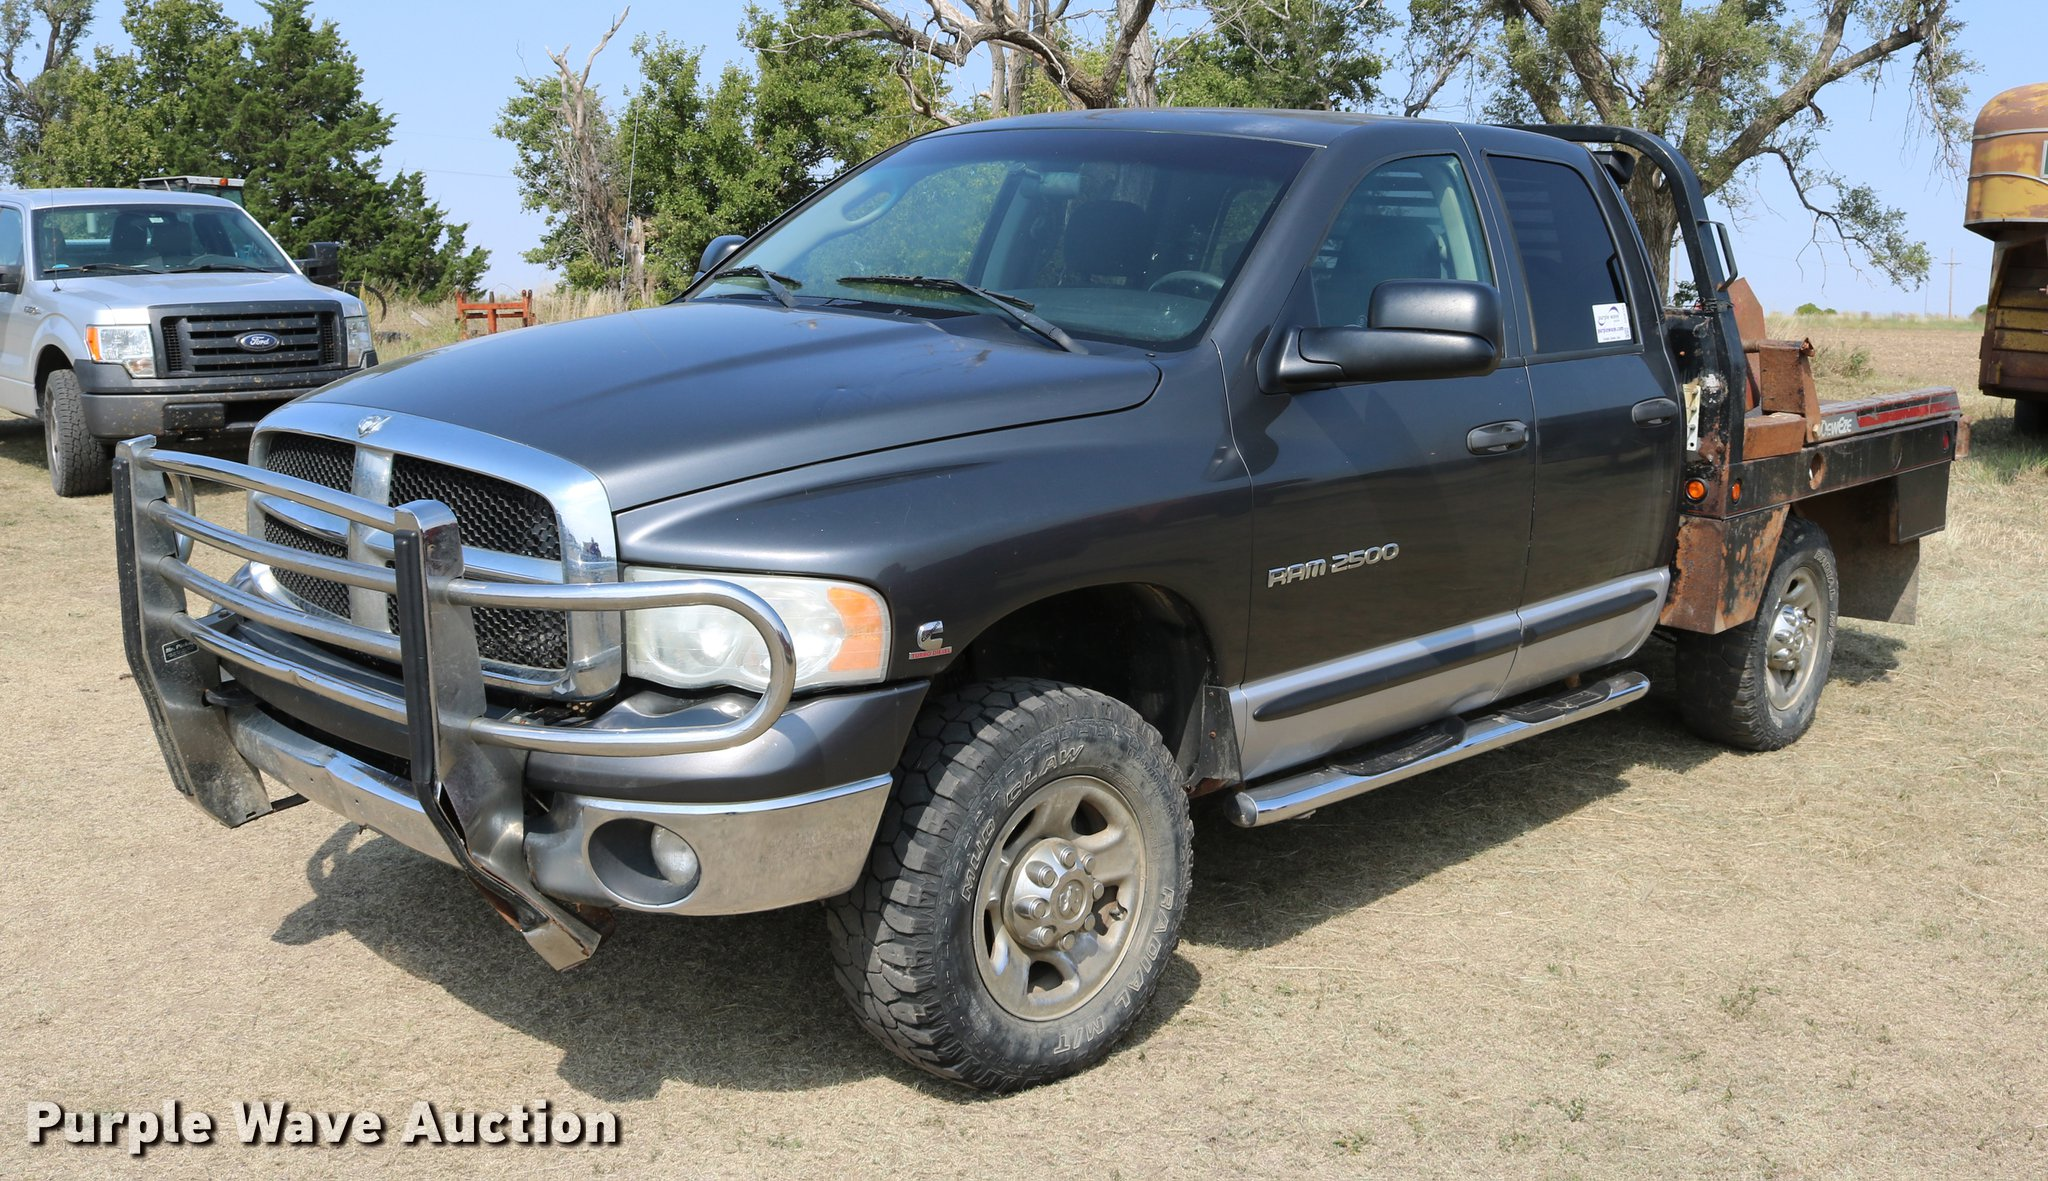 2004 Dodge Ram 2500 Quad Cab Flatbed Pickup Truck In Hunter Ks Item Dd0165 Sold Purple Wave